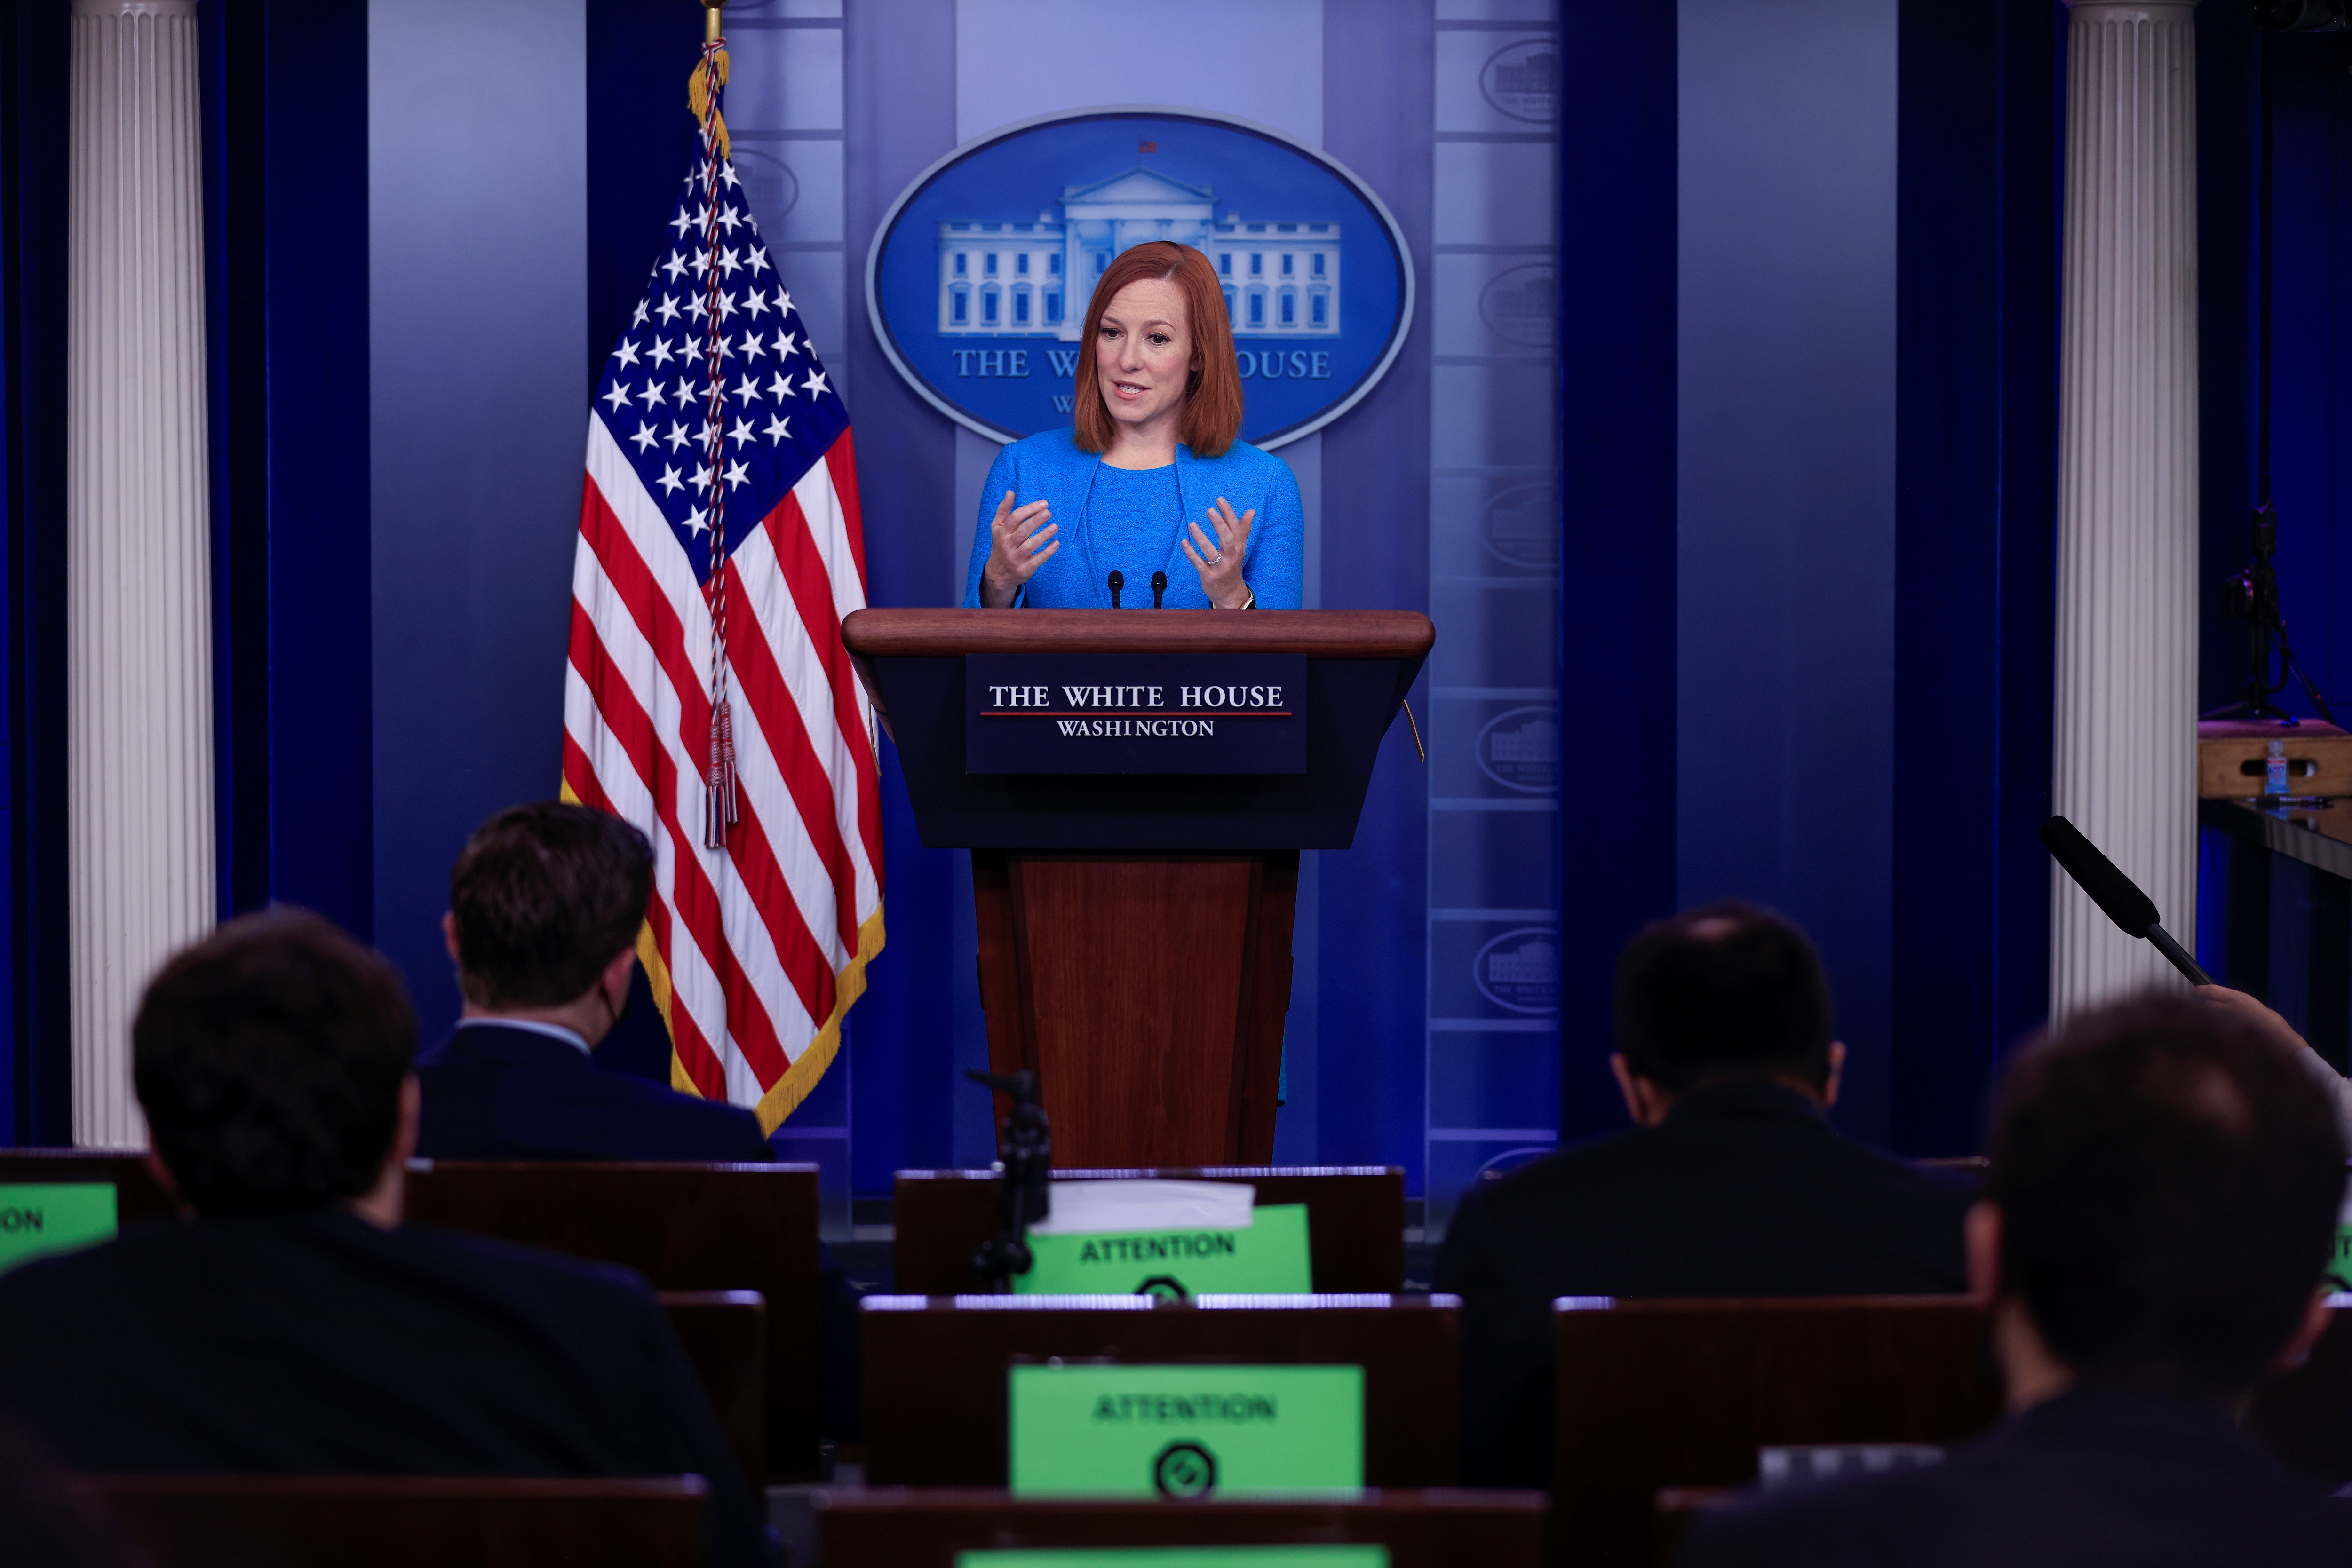 White House Press Secretary Jen Psaki delivers remarks during a press briefing at the White House in Washington, U.S., April 15, 2021. REUTERS/Tom Brenner